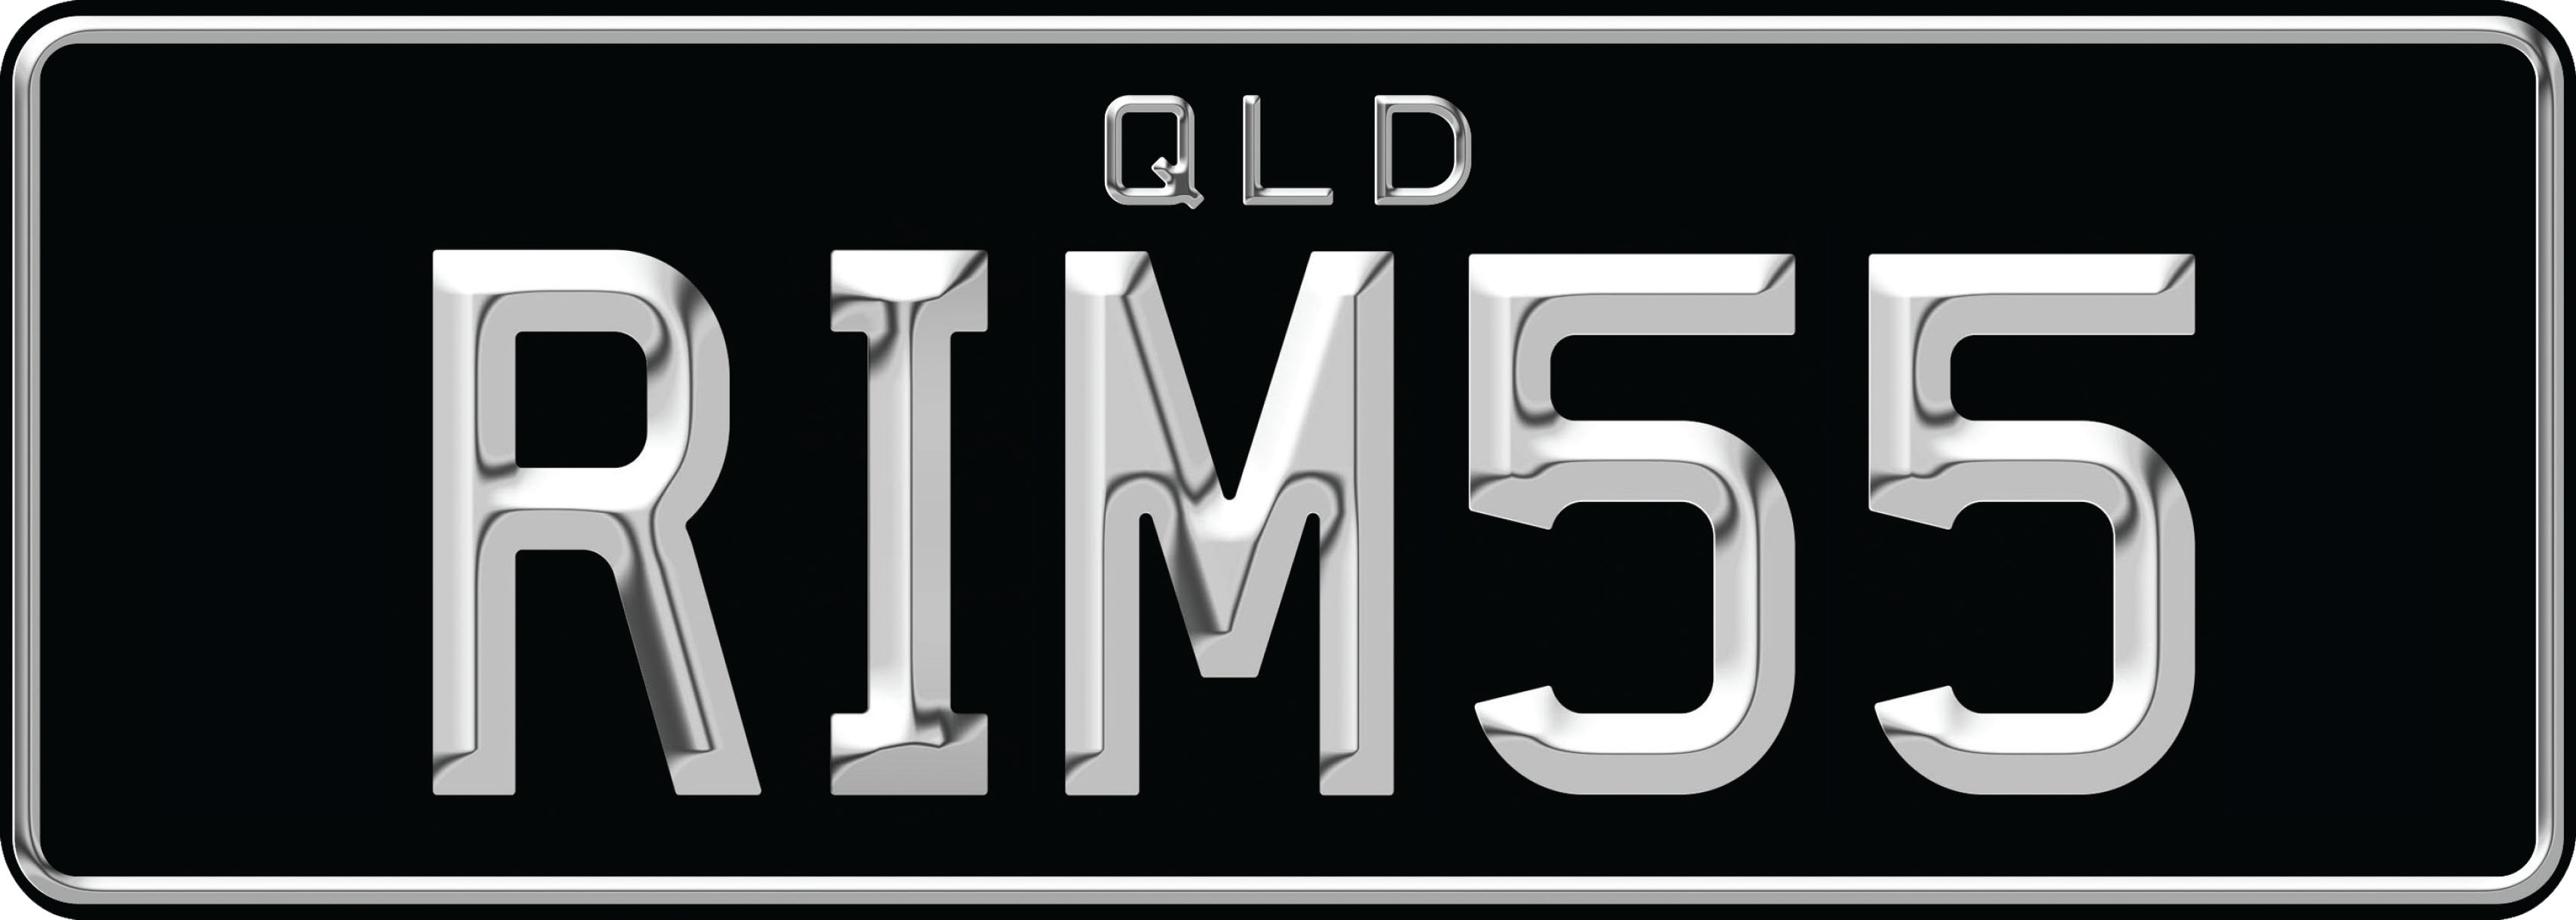 A 3D style personalised plate, with chrome effect text on a black background. The letters Q L D are in the center top of the plate in a small font, with the combination in a bigger font below. The combination reads R I M 5 5